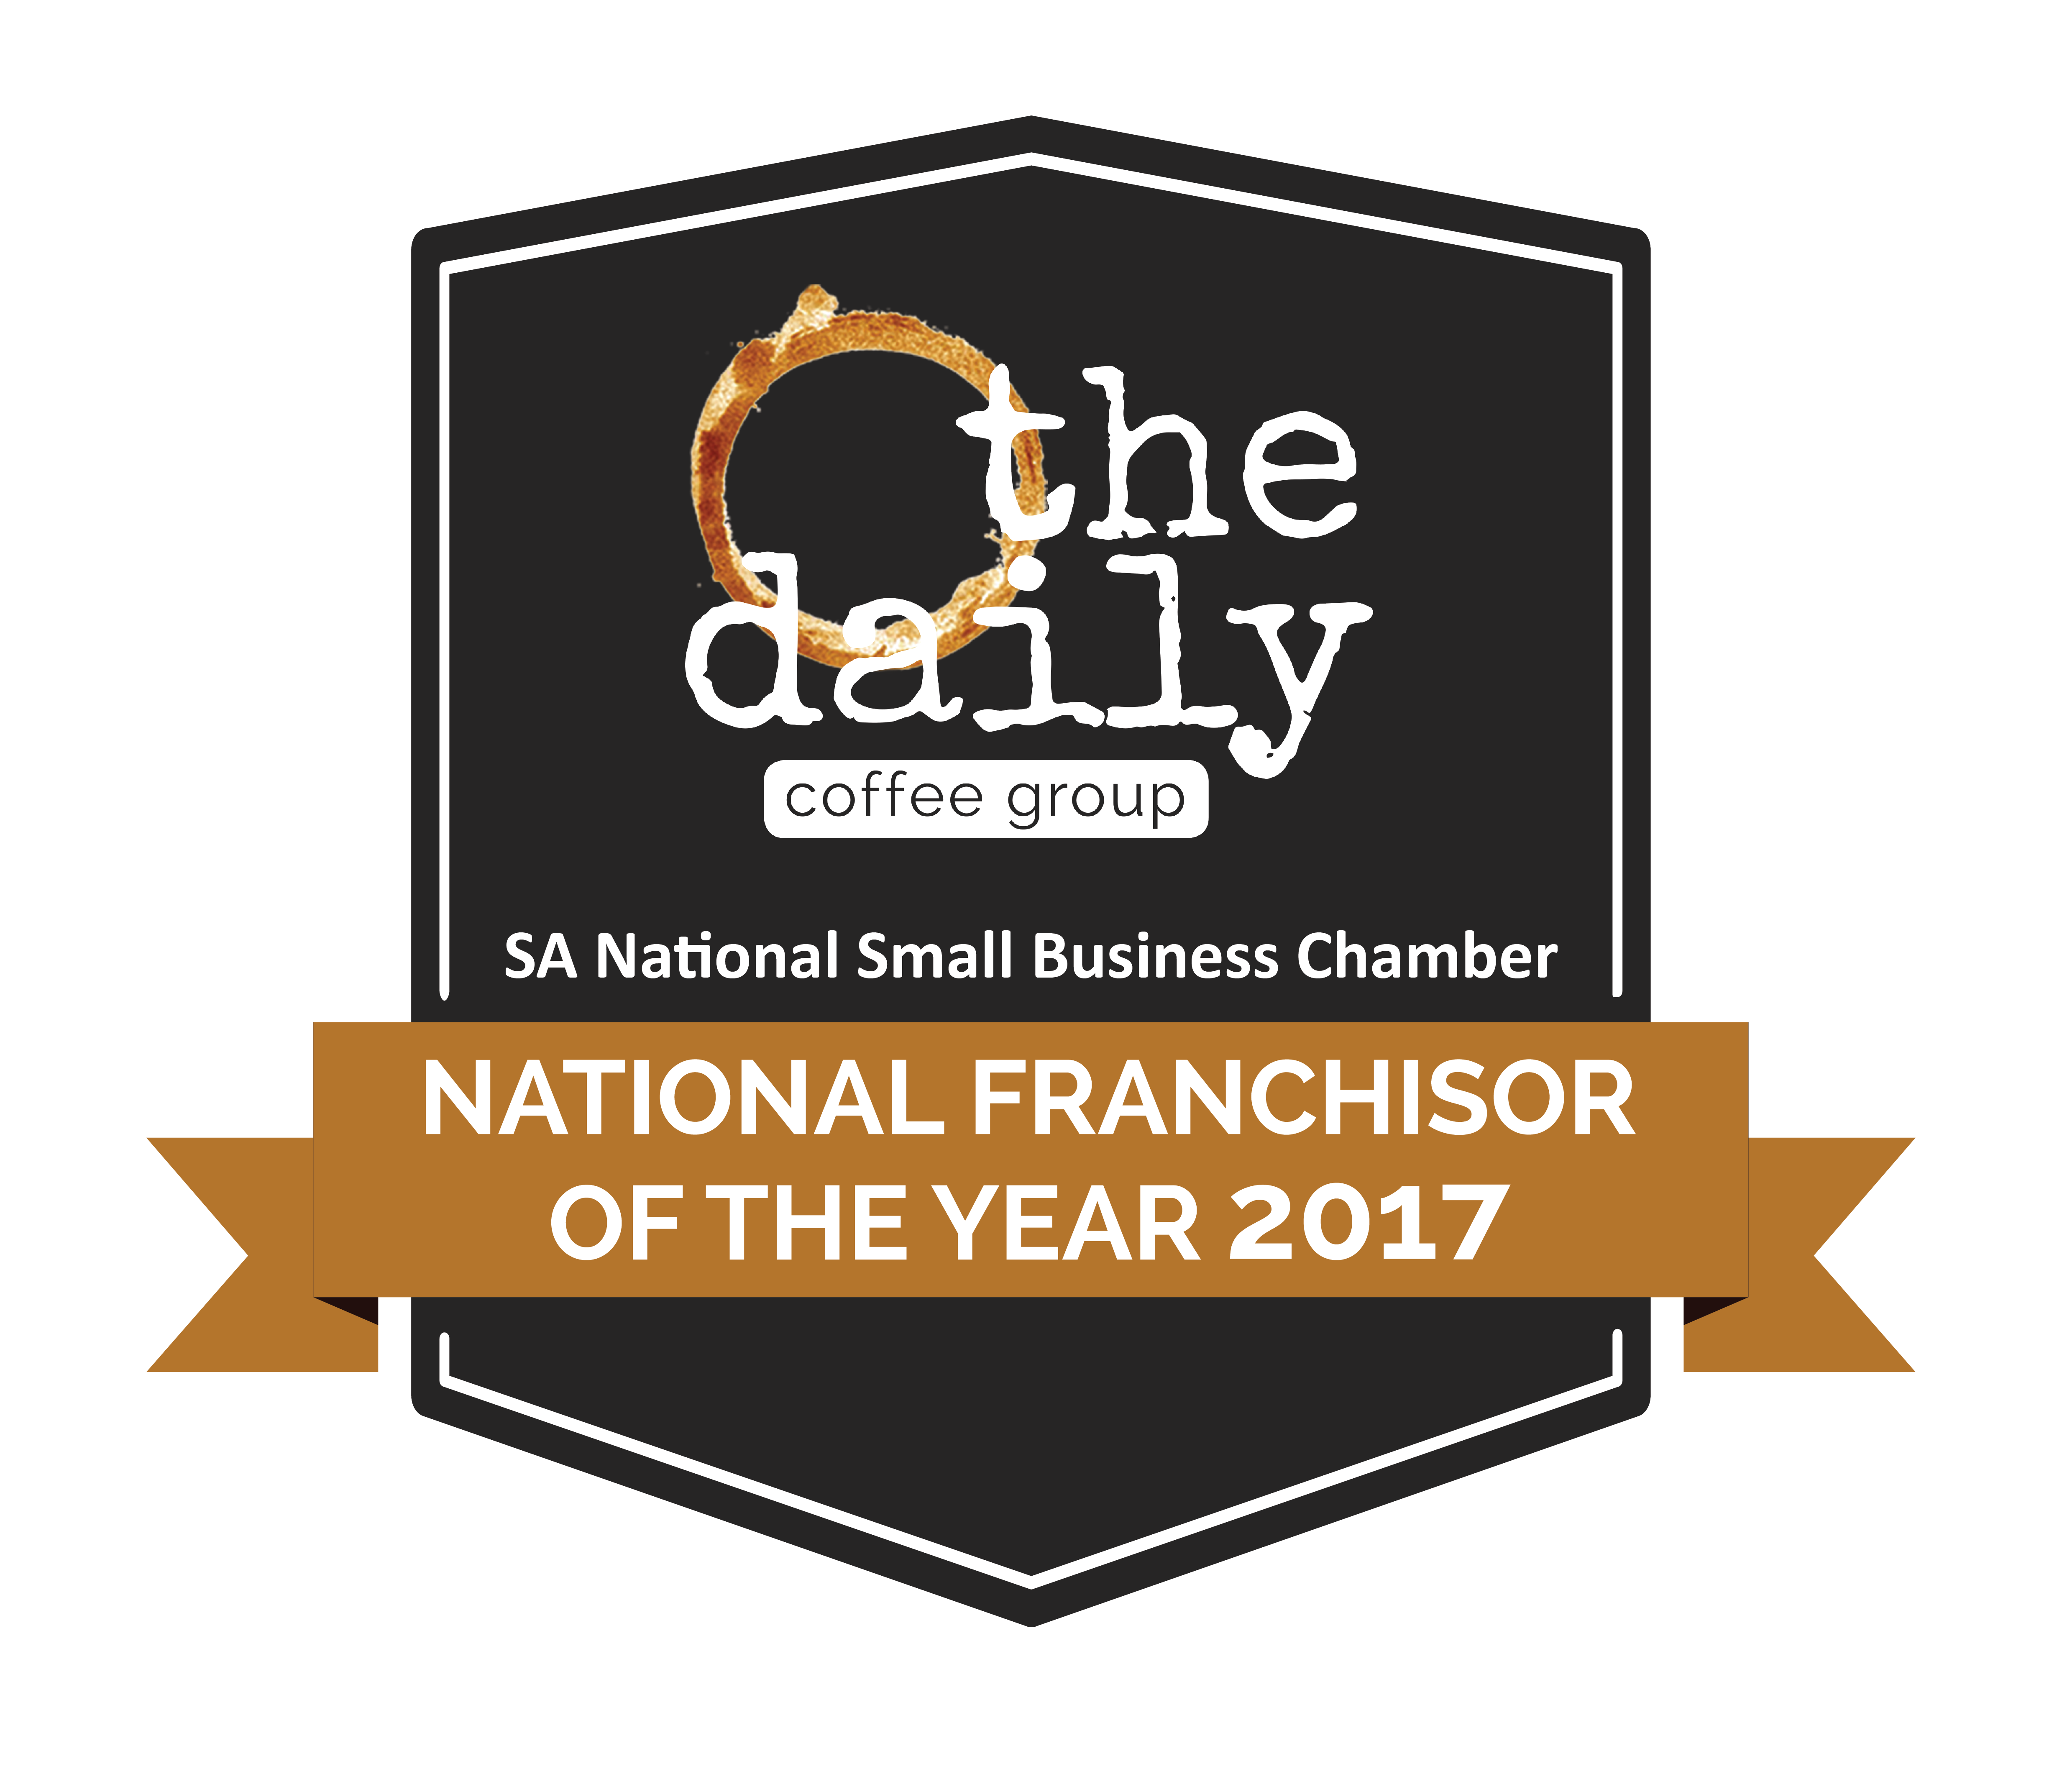 Become a franchisee - The Daily Coffee Cafe